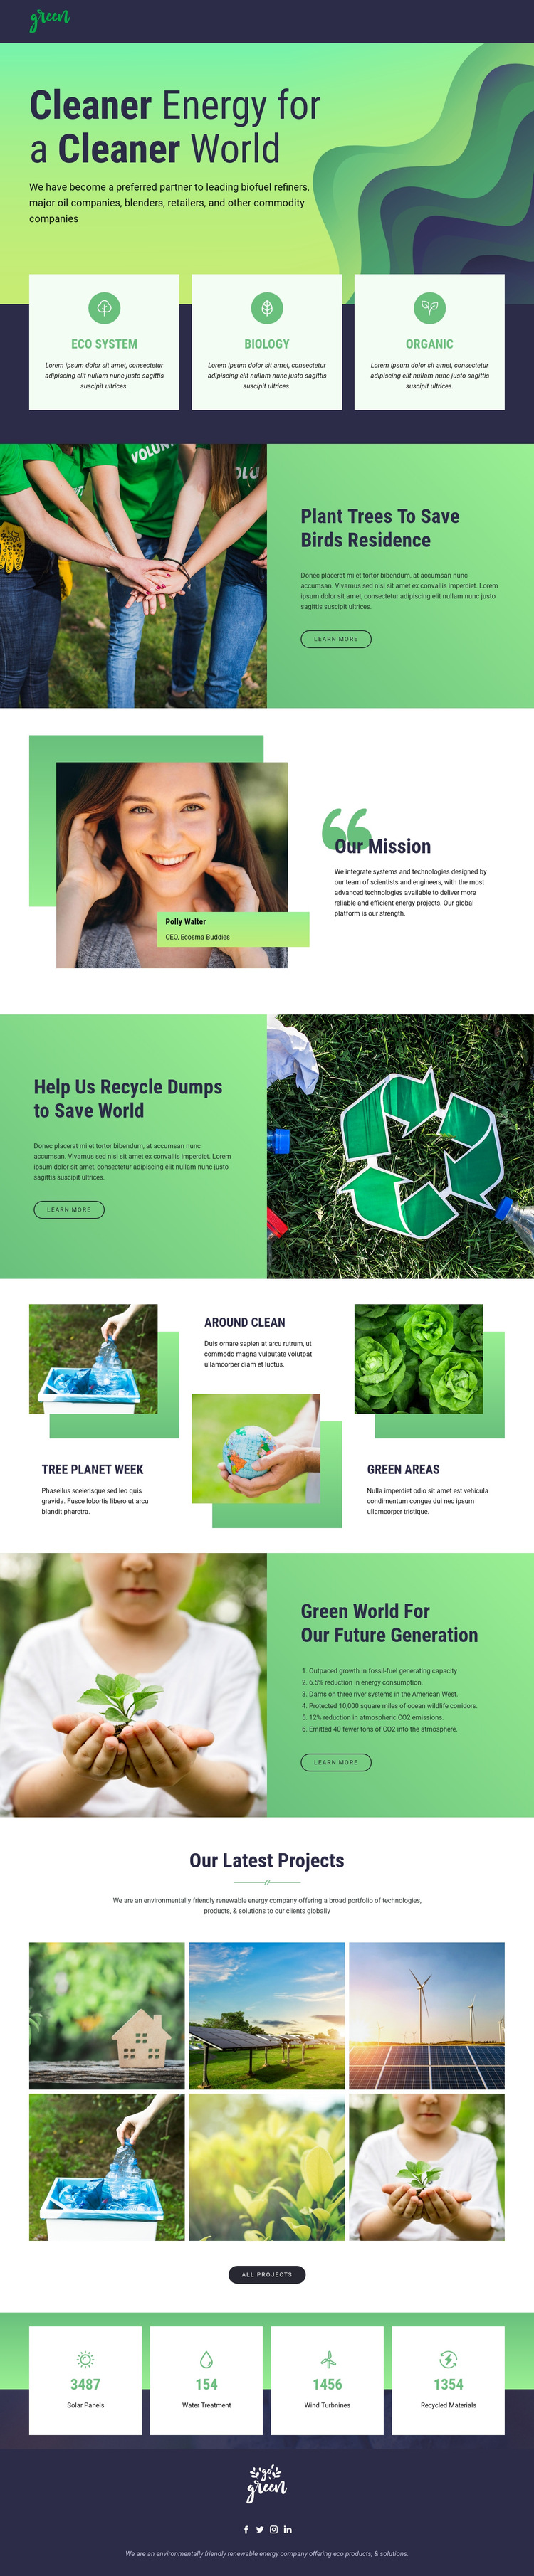 Clean energy to save nature HTML5 Template